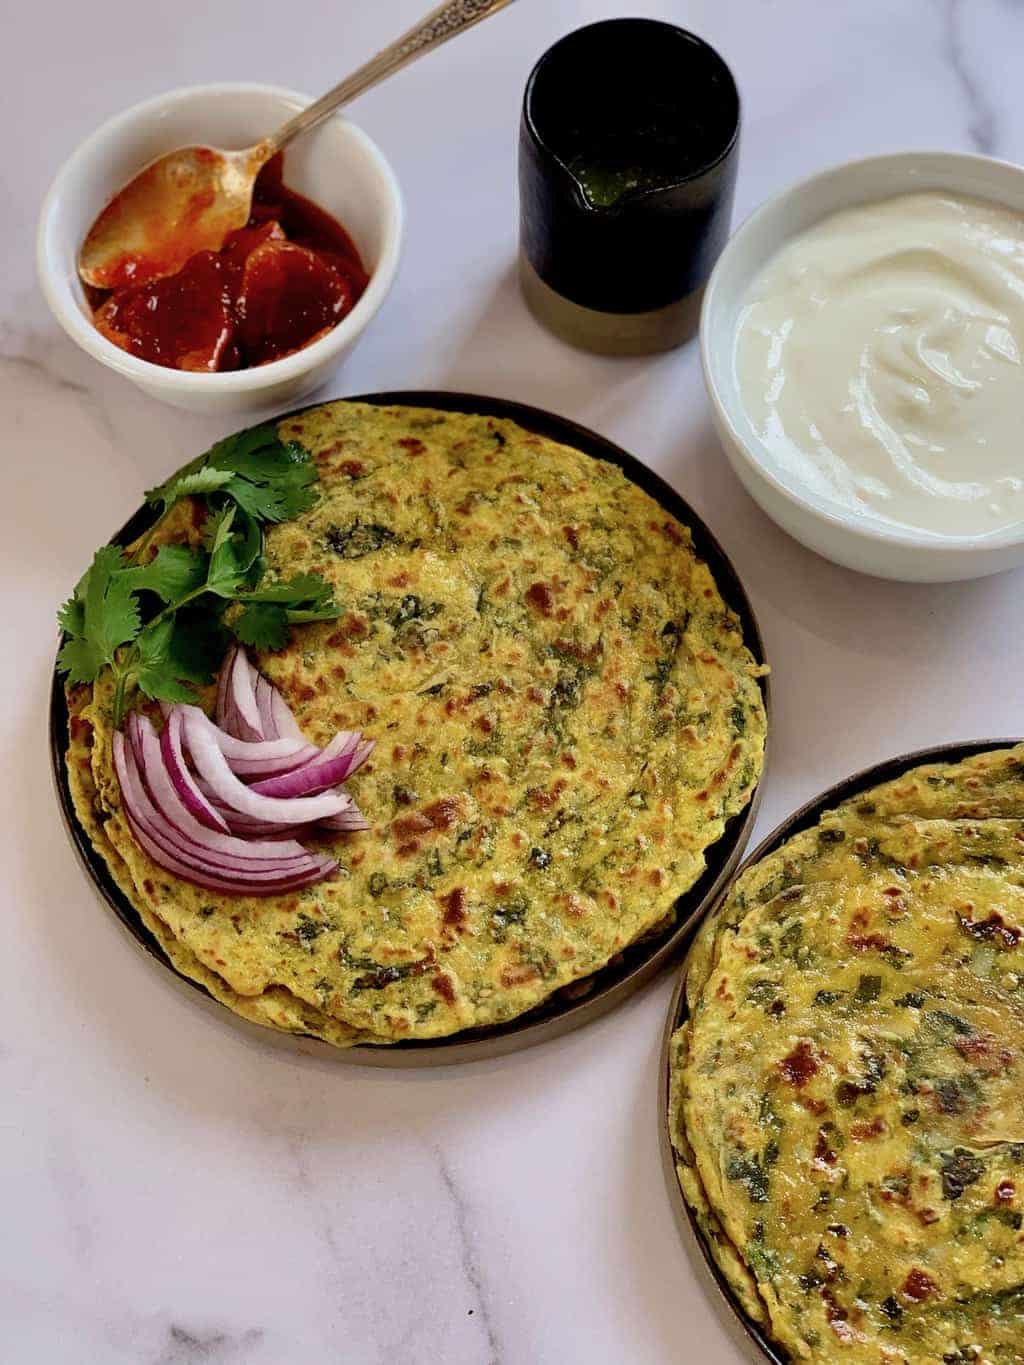 Kale Potato Parathas are layered flatbreads made with whole wheat flour kale, potatoes, green chilies, garlic and spices. #ministryofcurry #vegetarian